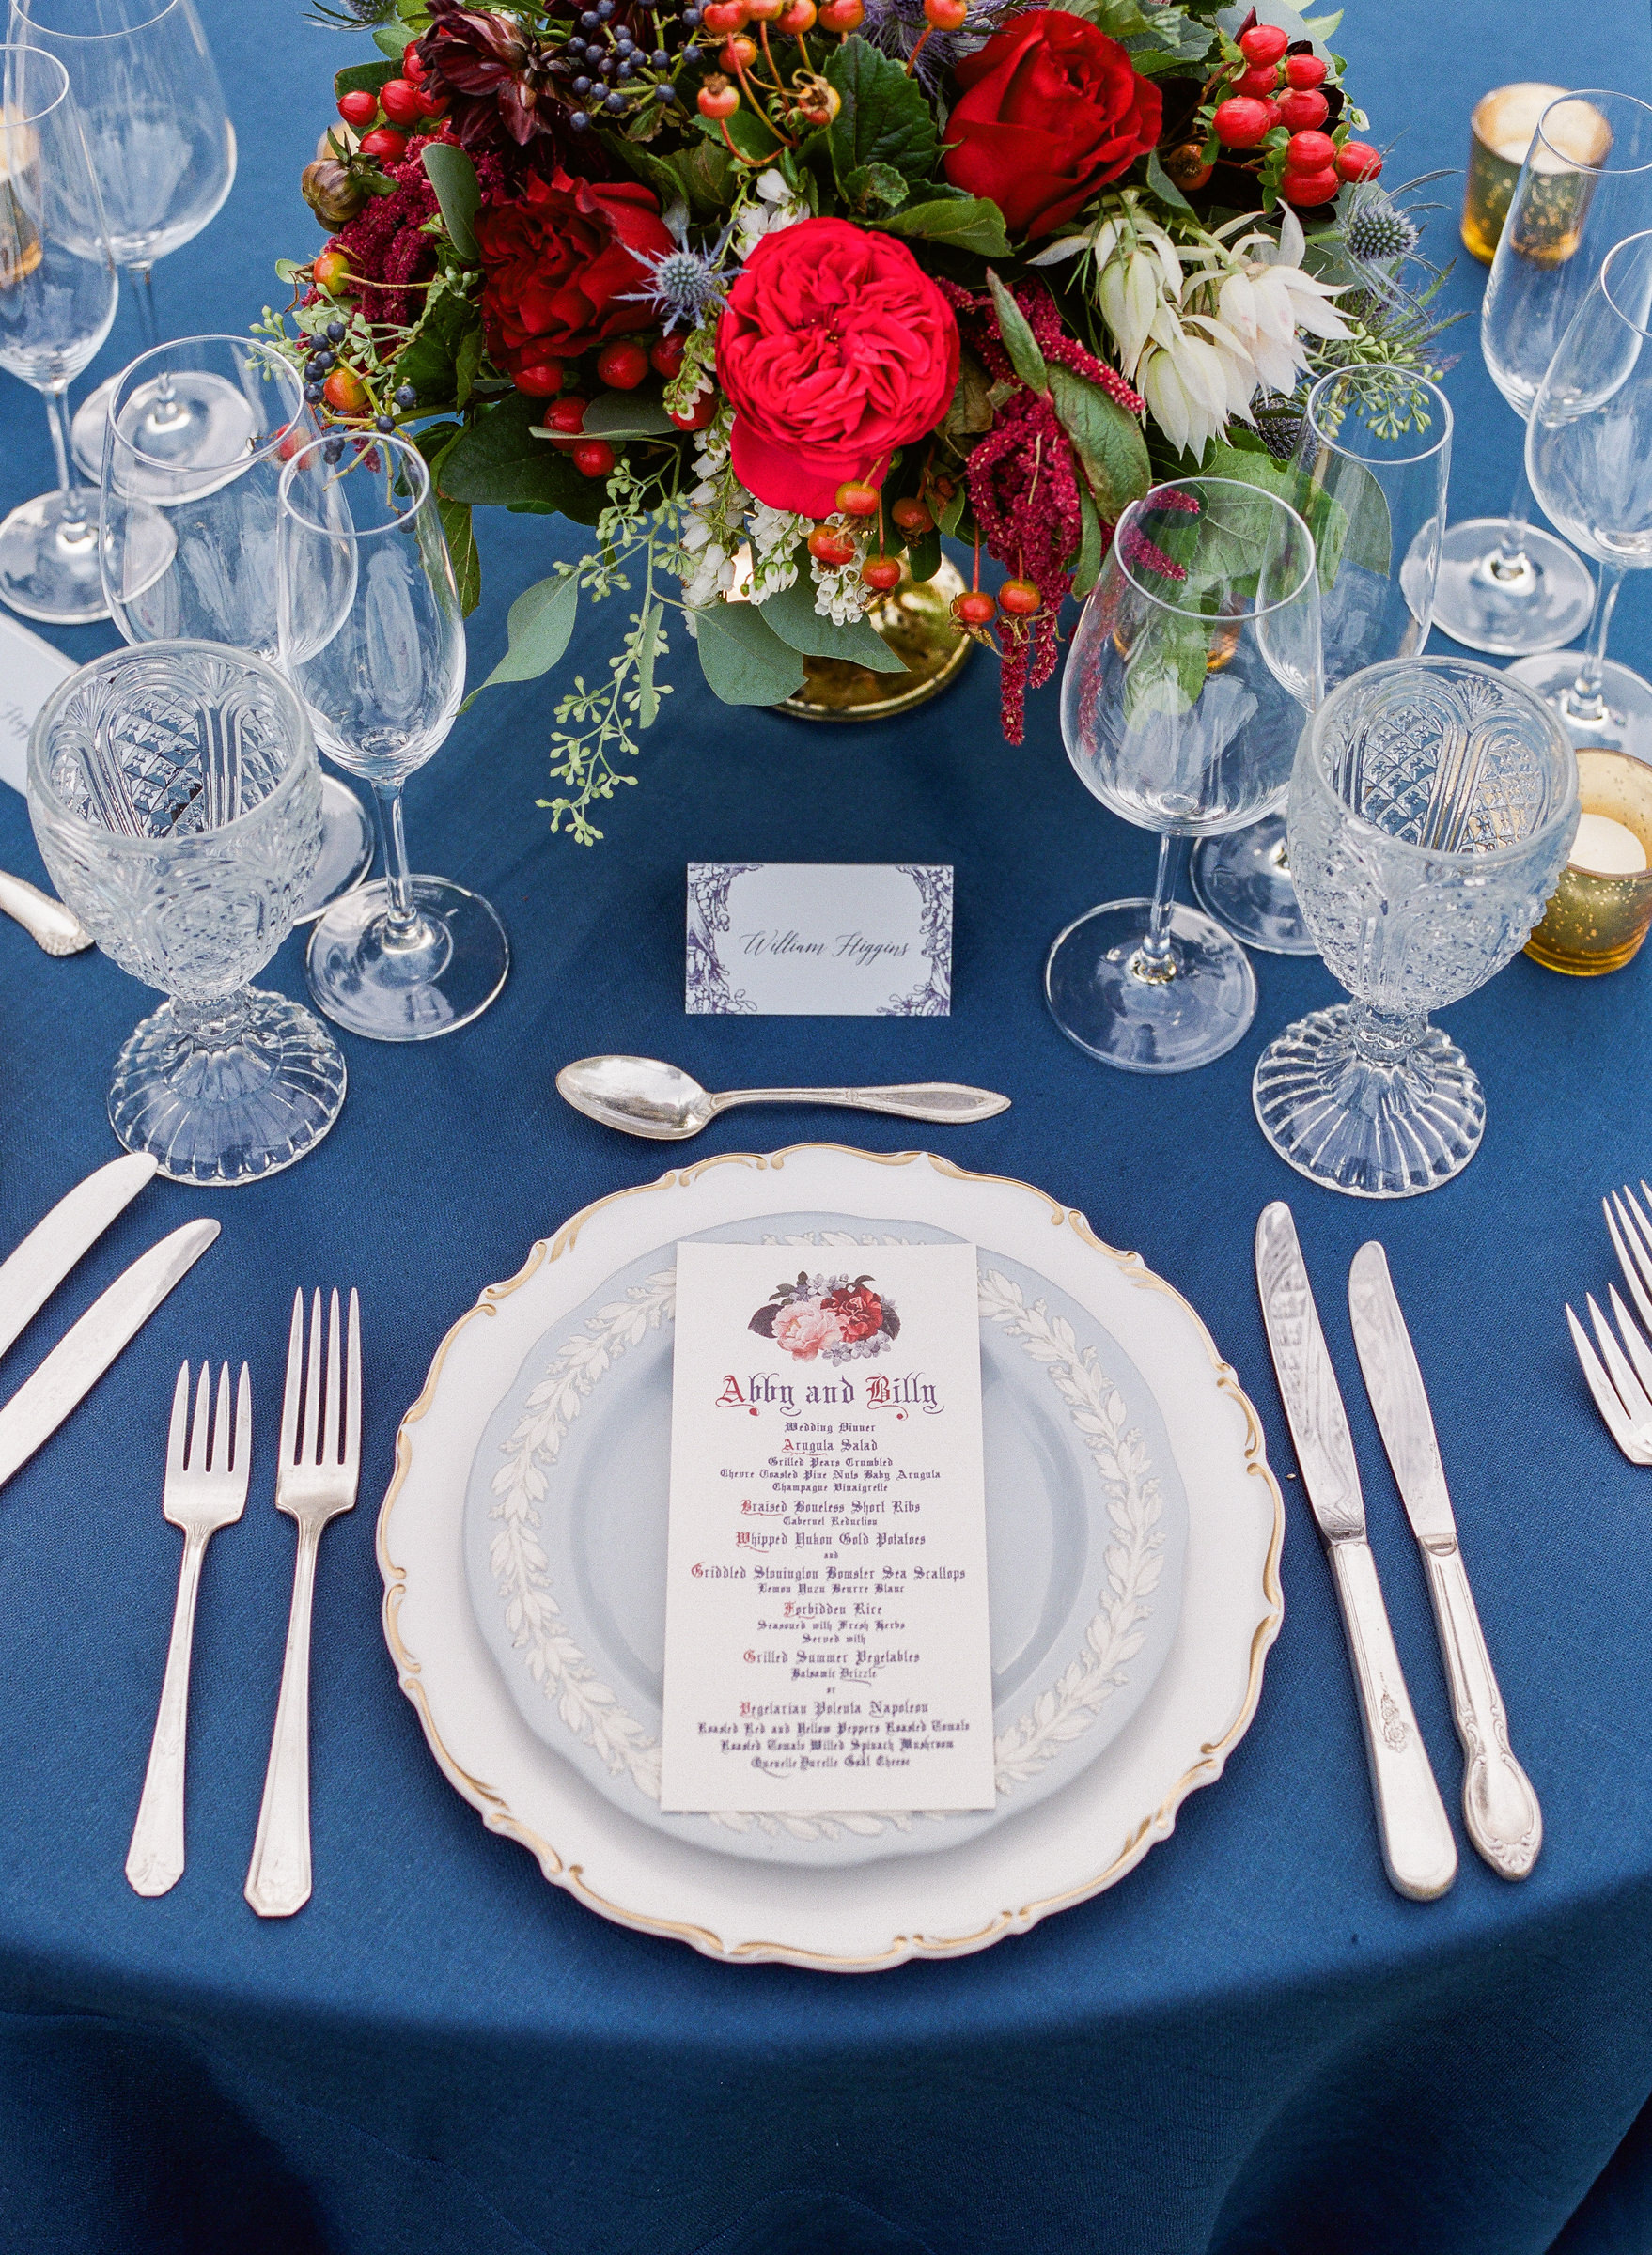 Winter wedding place setting with crystal and wedgewood - photo by Corbin Gurkin